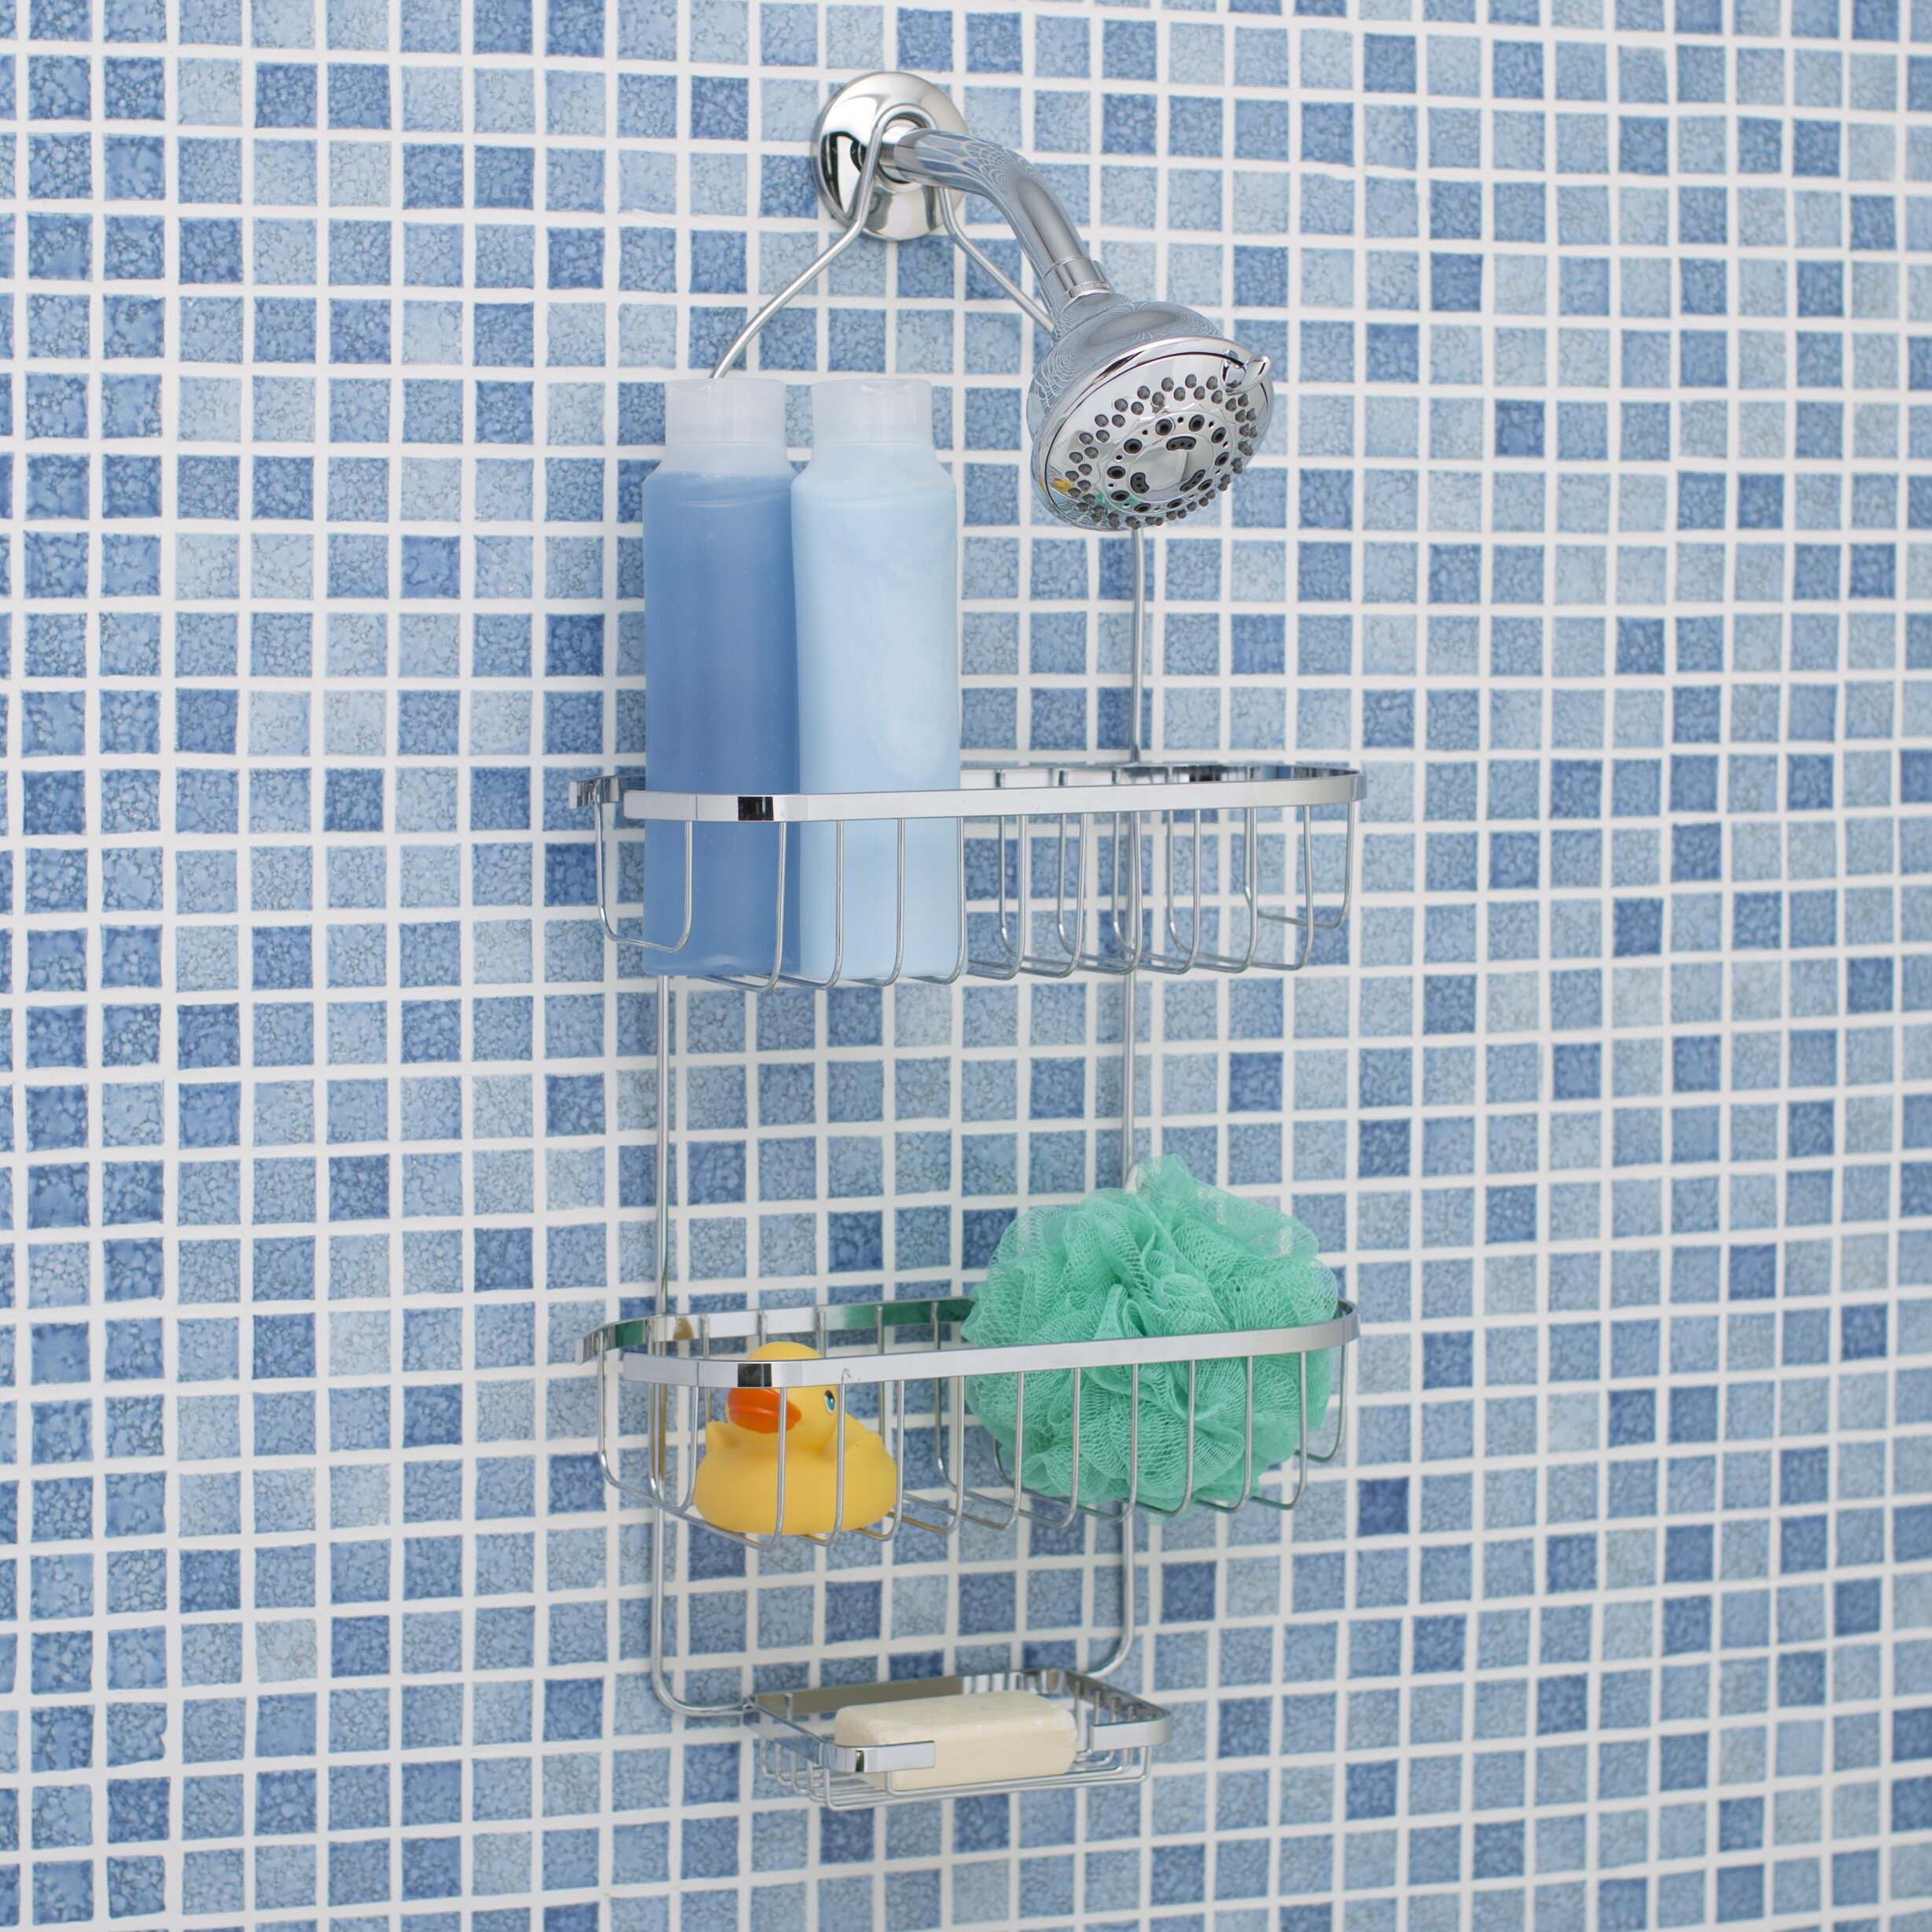 Fine Shower Caddy Reviews Photos - Bathtub Ideas - dilata.info